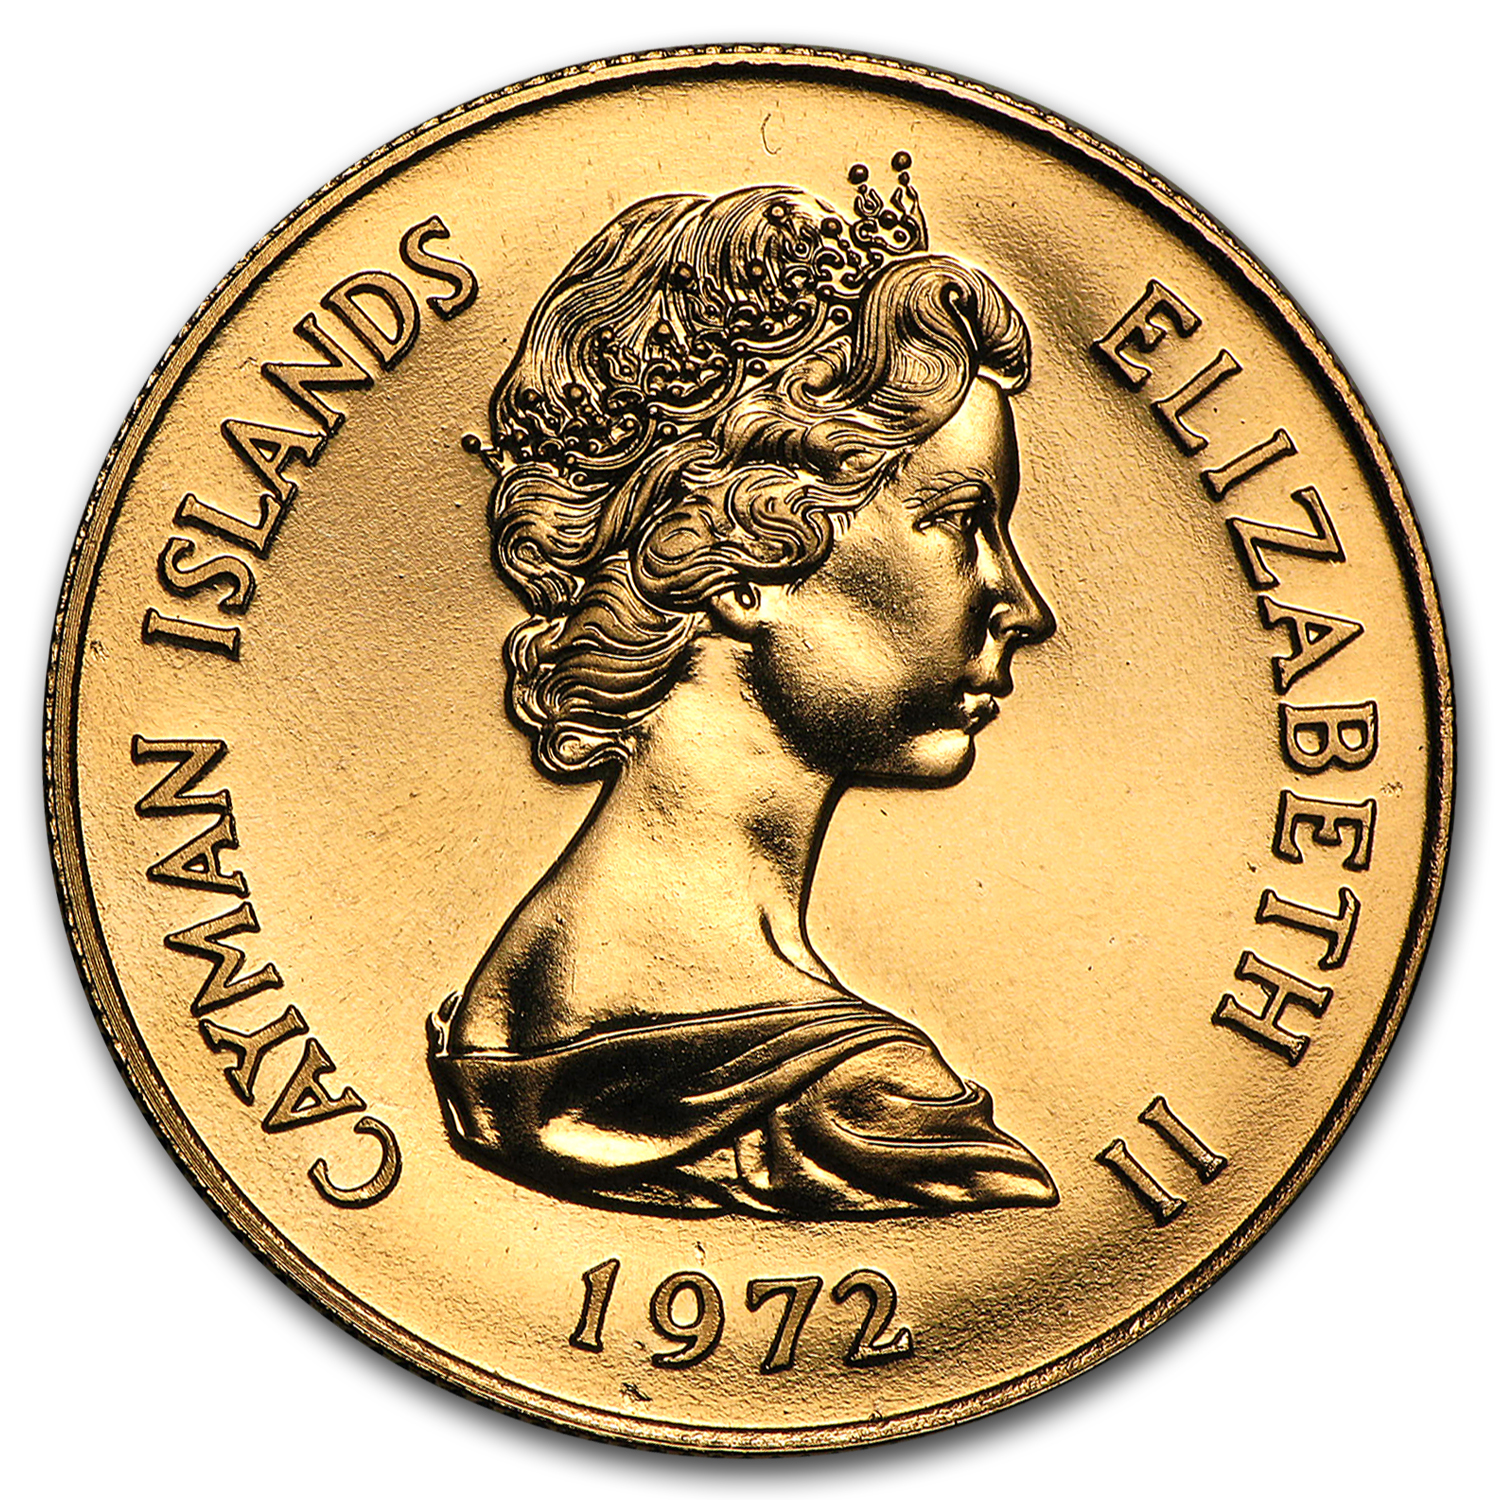 1972 Cayman Islands Proof Gold 25 Dollars